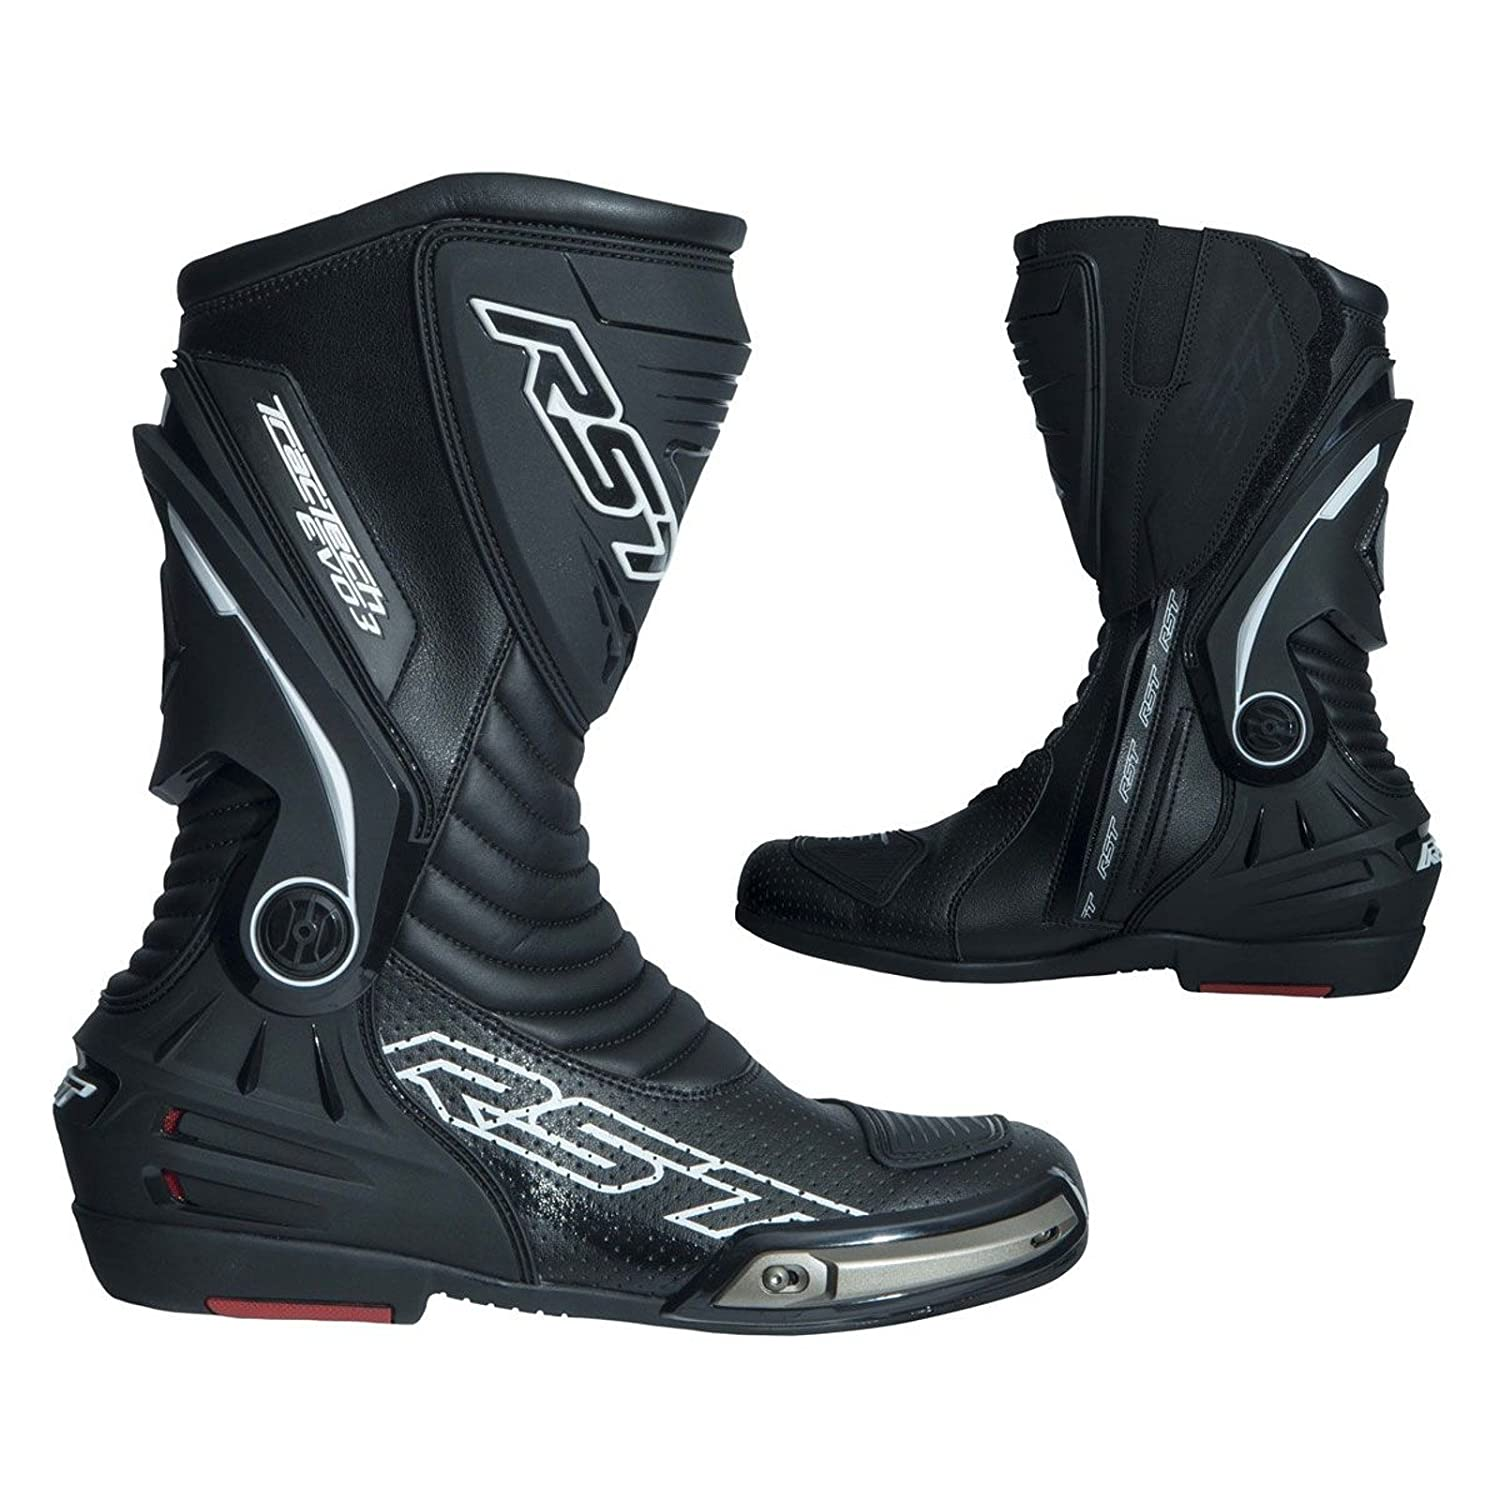 RST 2101 TRACTECH III BOOT 5056136212744